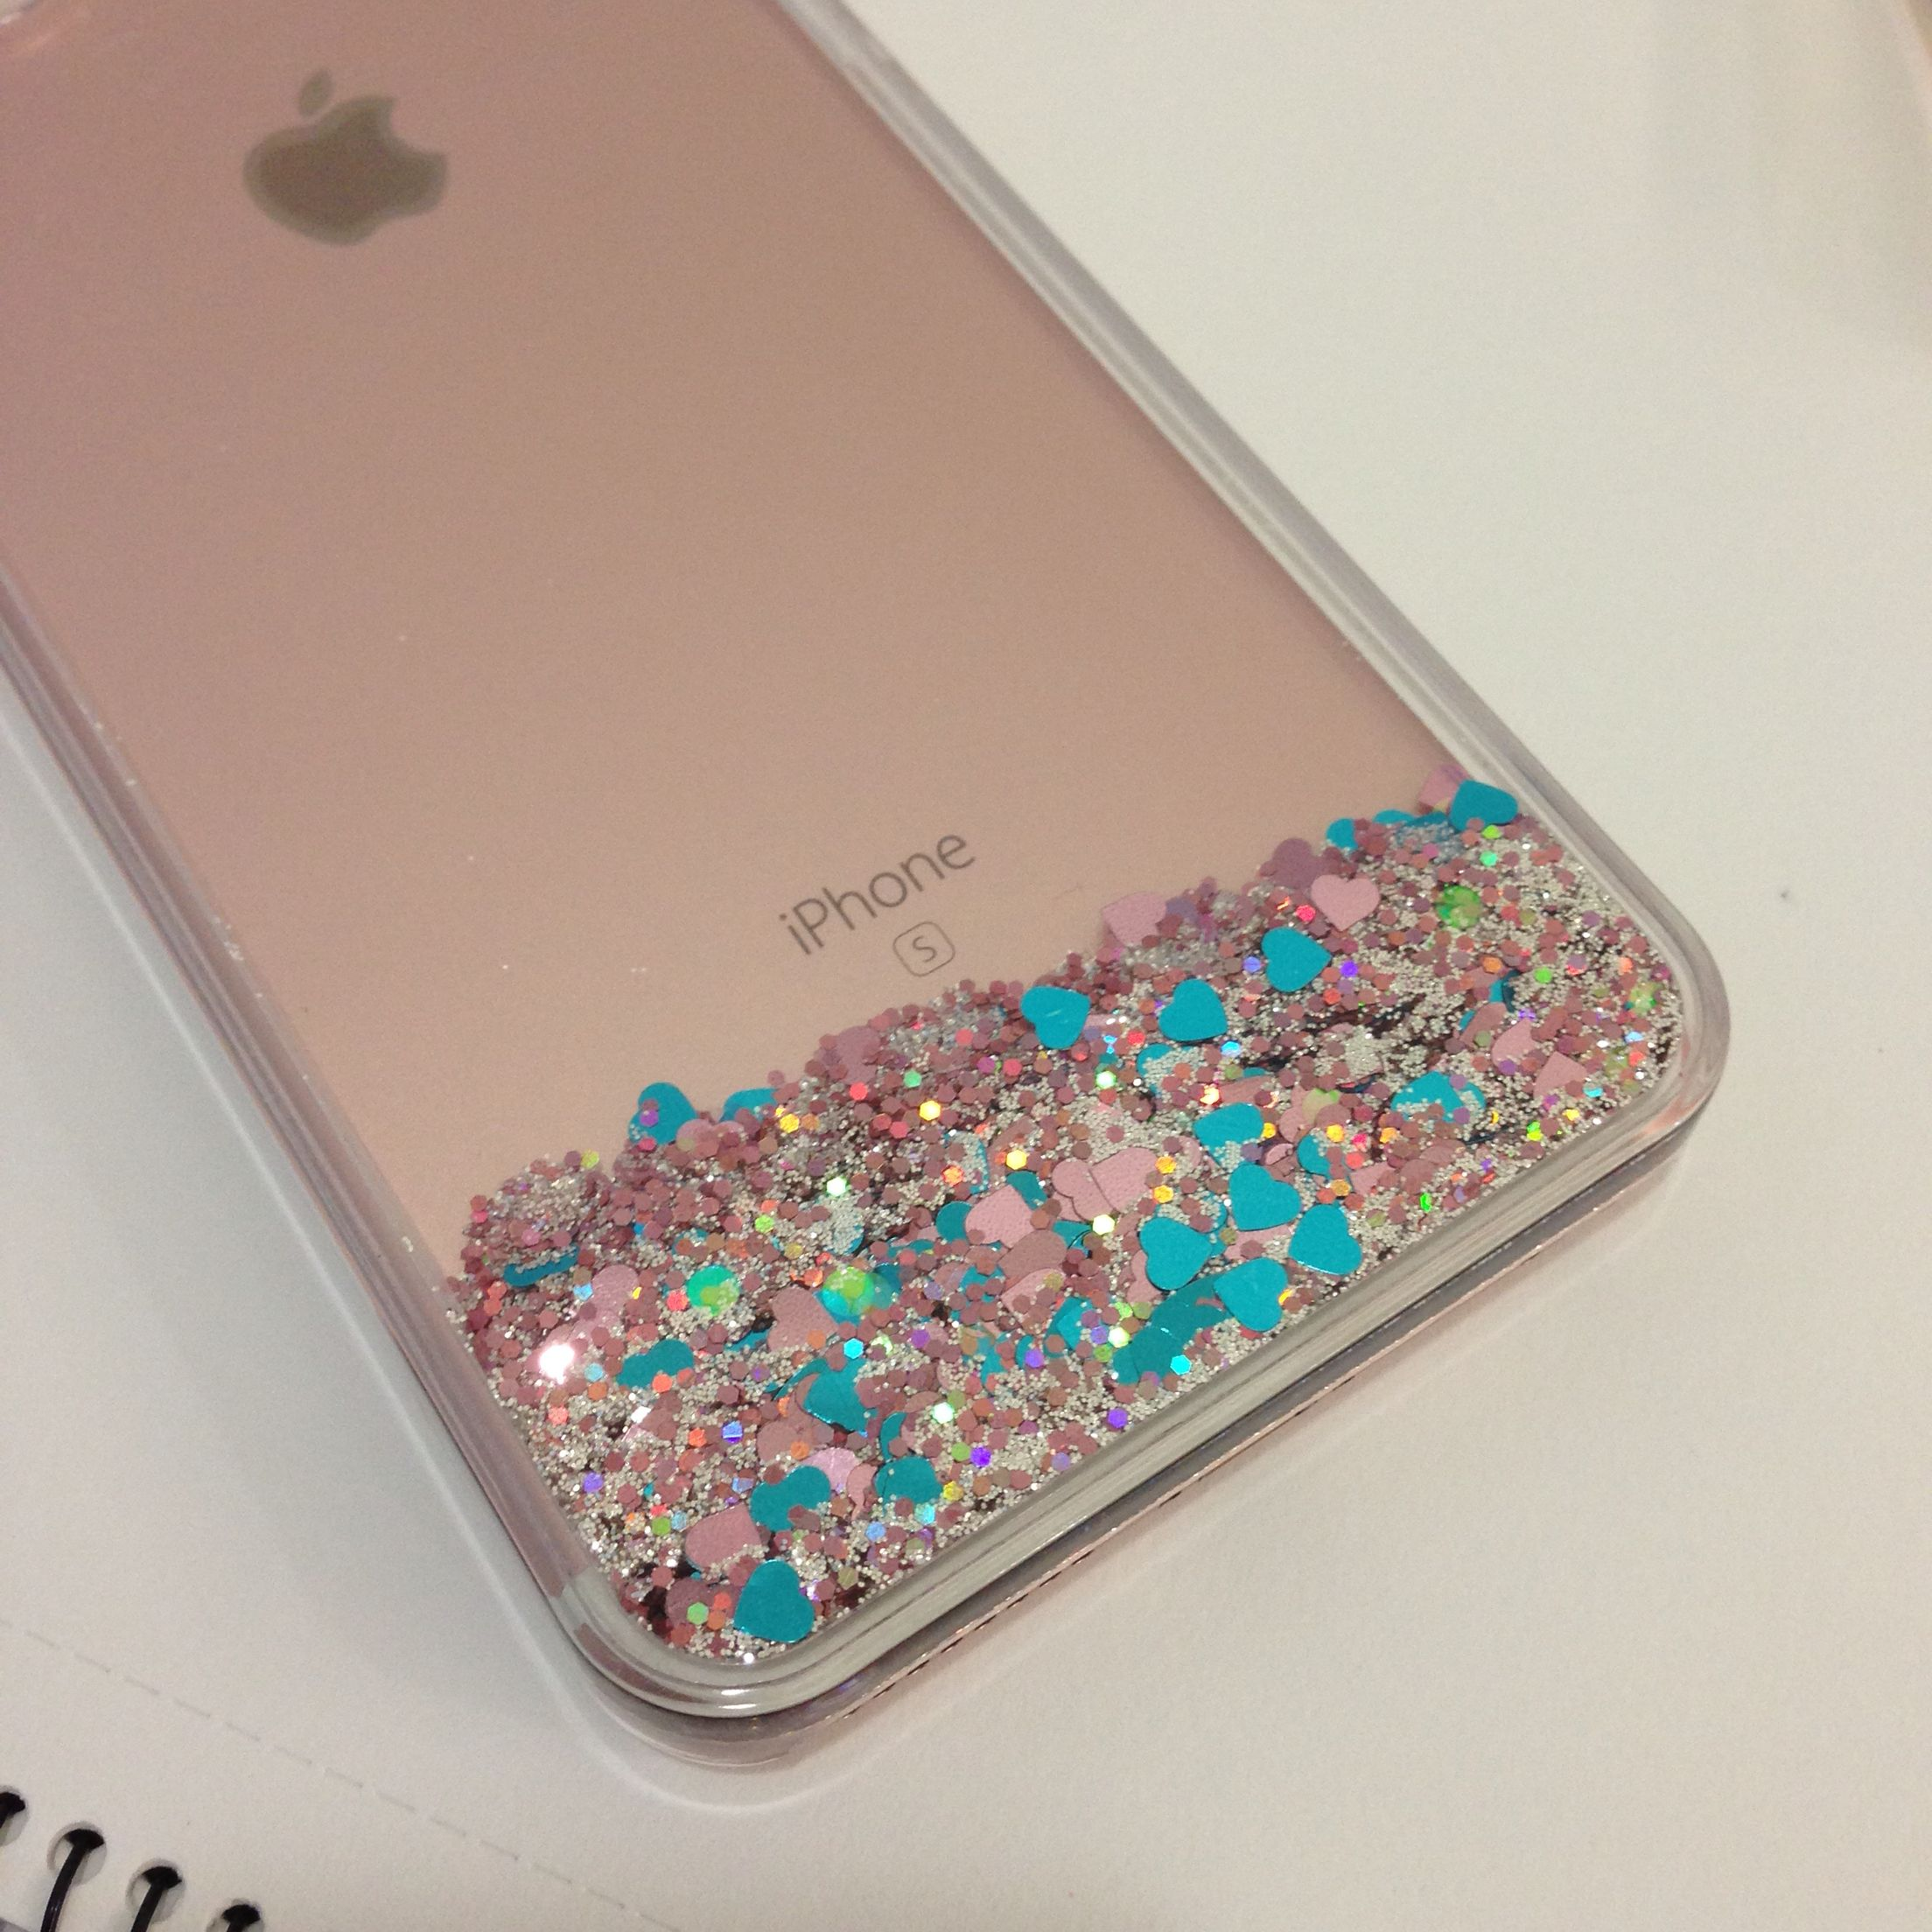 My perfect iPhone 6S Plus Rose Gold casing. Floating glitter particles that  you can obsess over all.day.long. c4ec25790e94